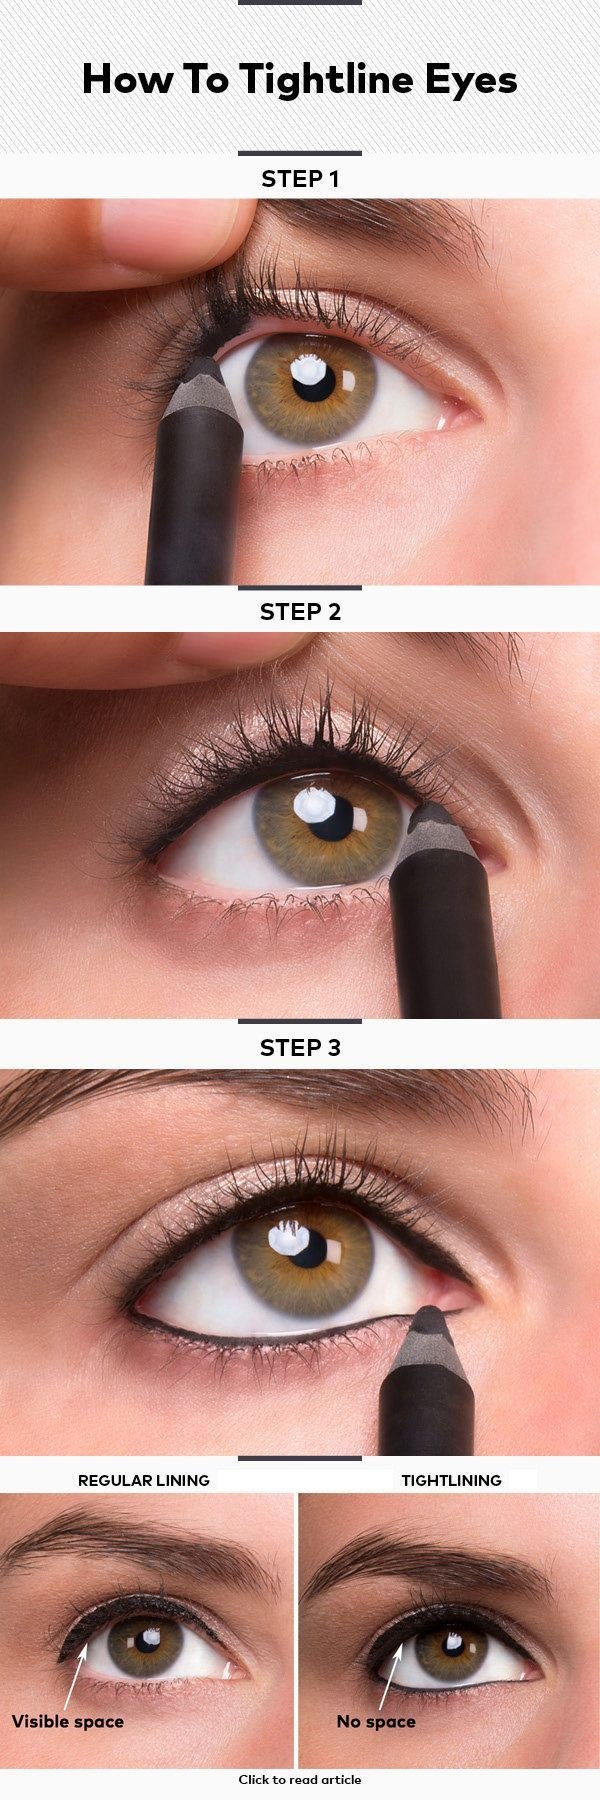 How to Tightline Your Eyes